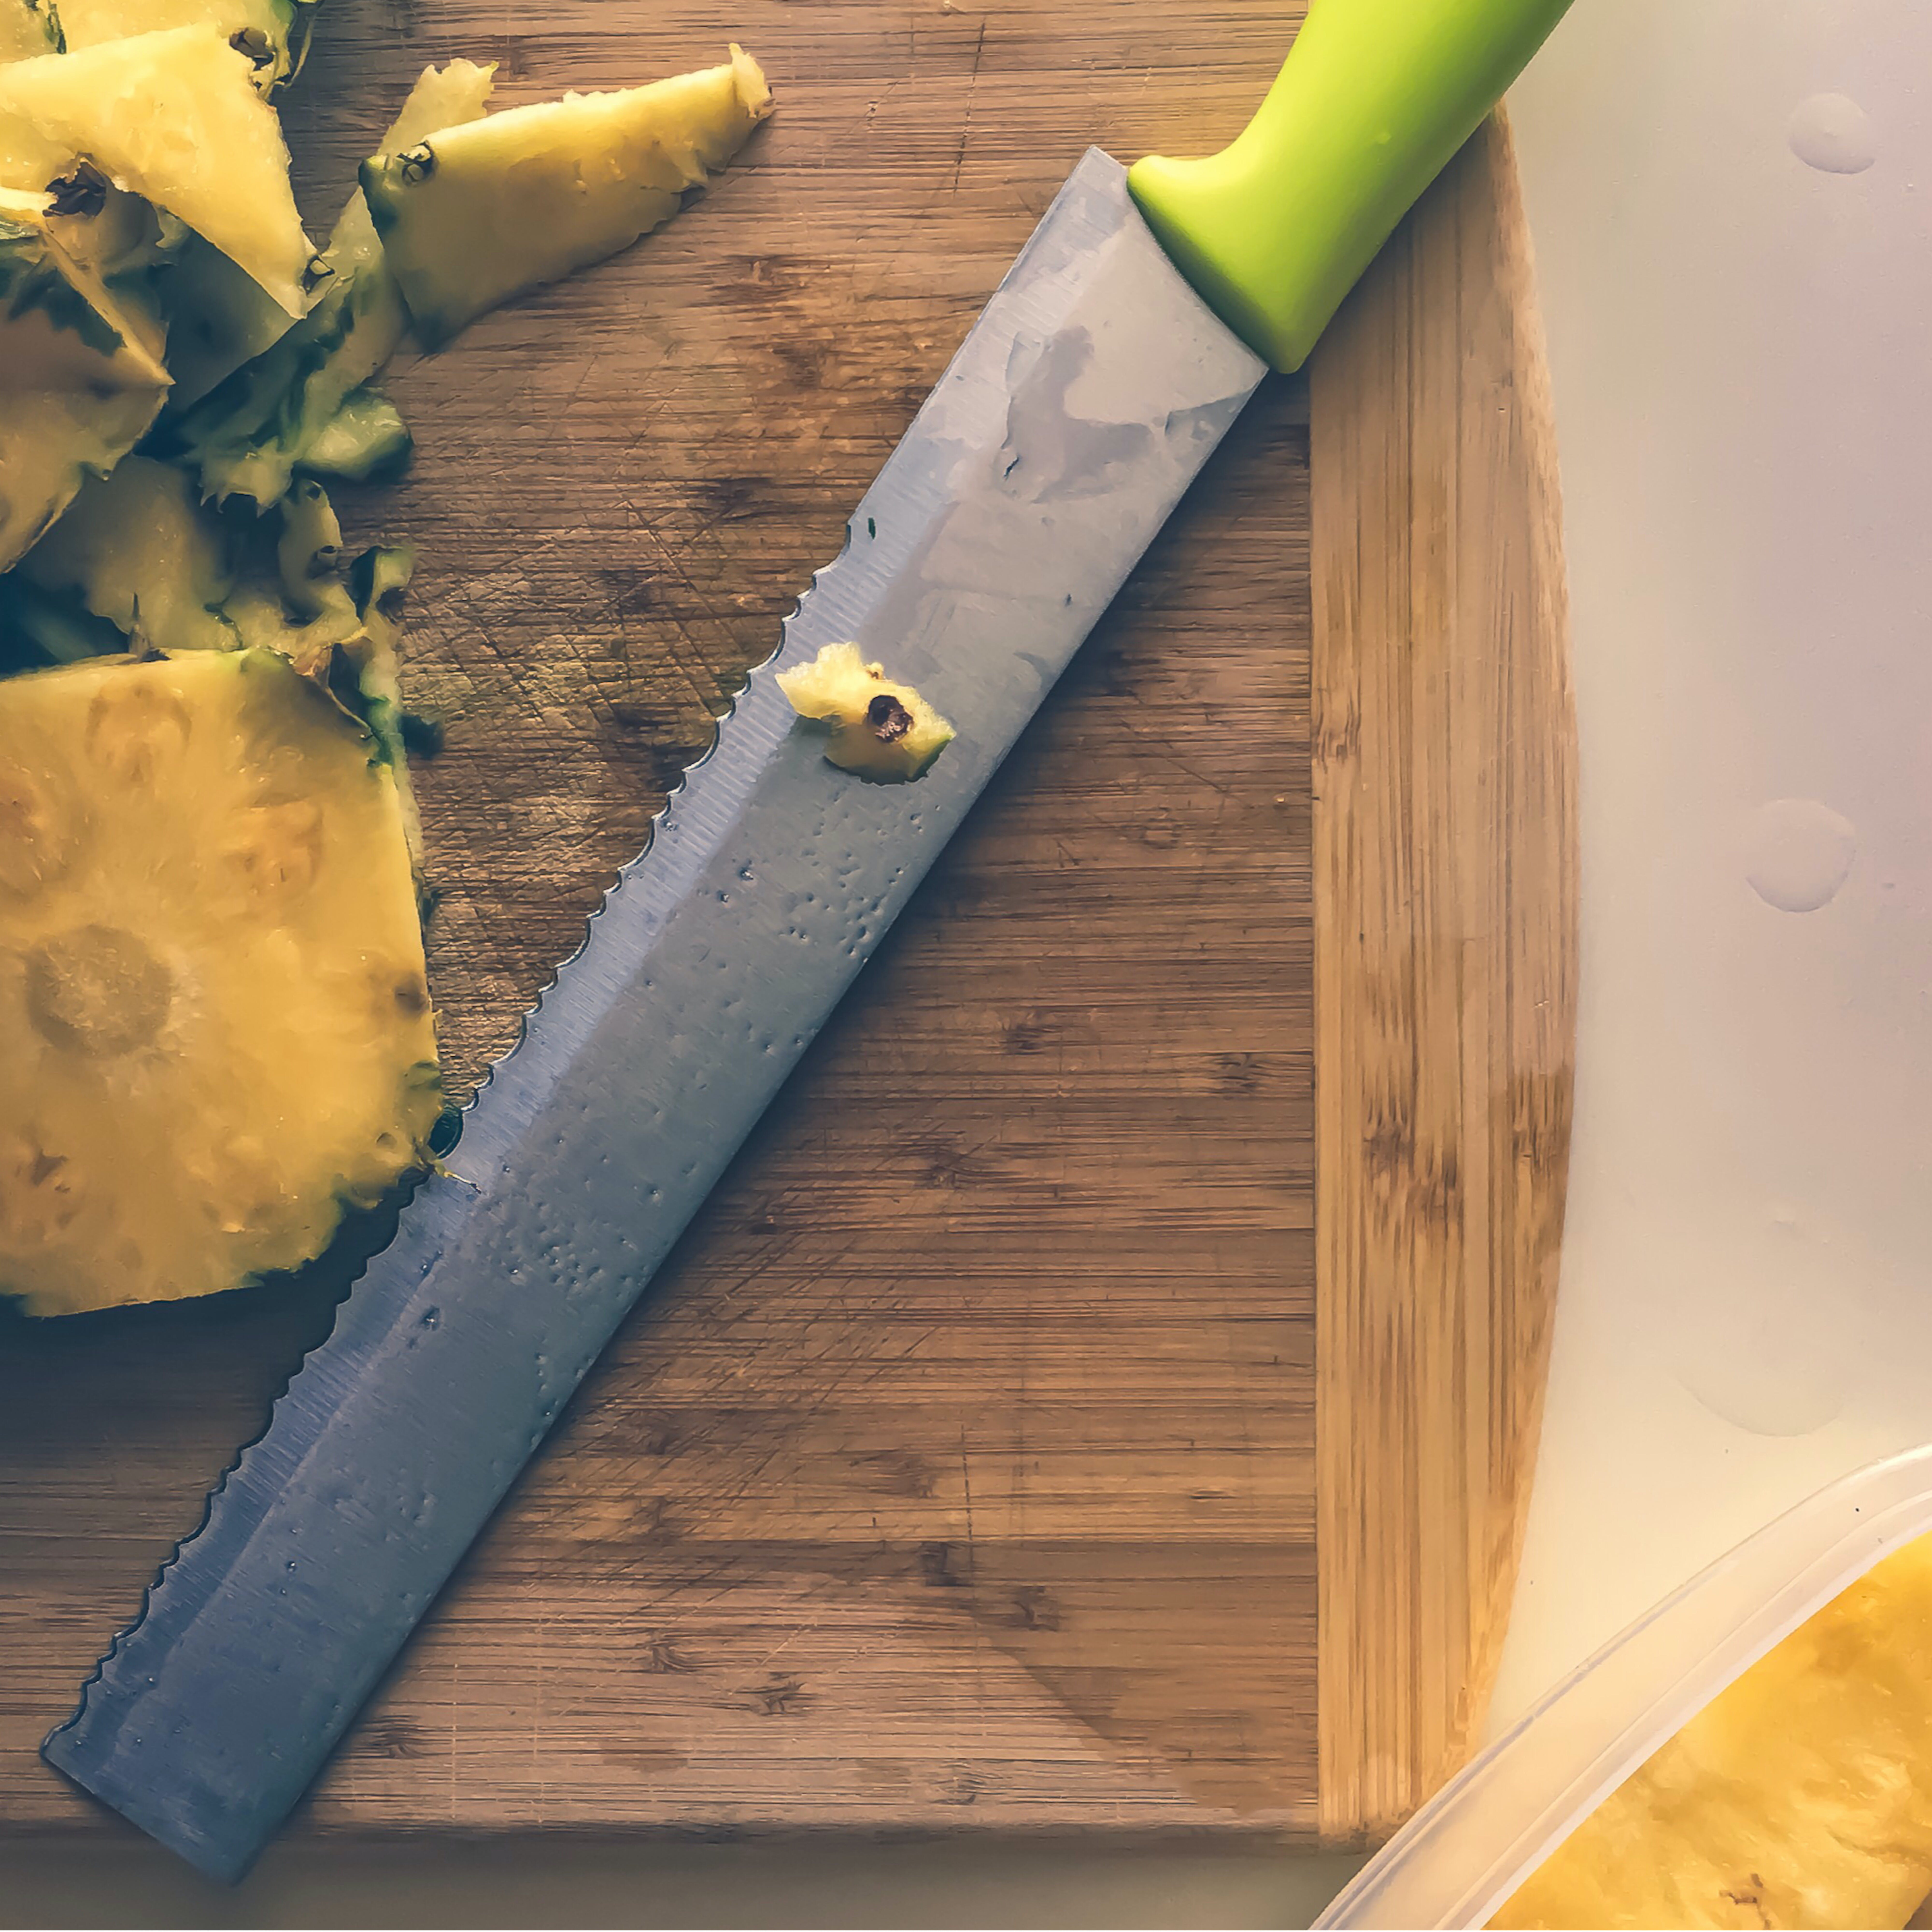 Free stock photo of asian food, cutting board, eating healthy, food